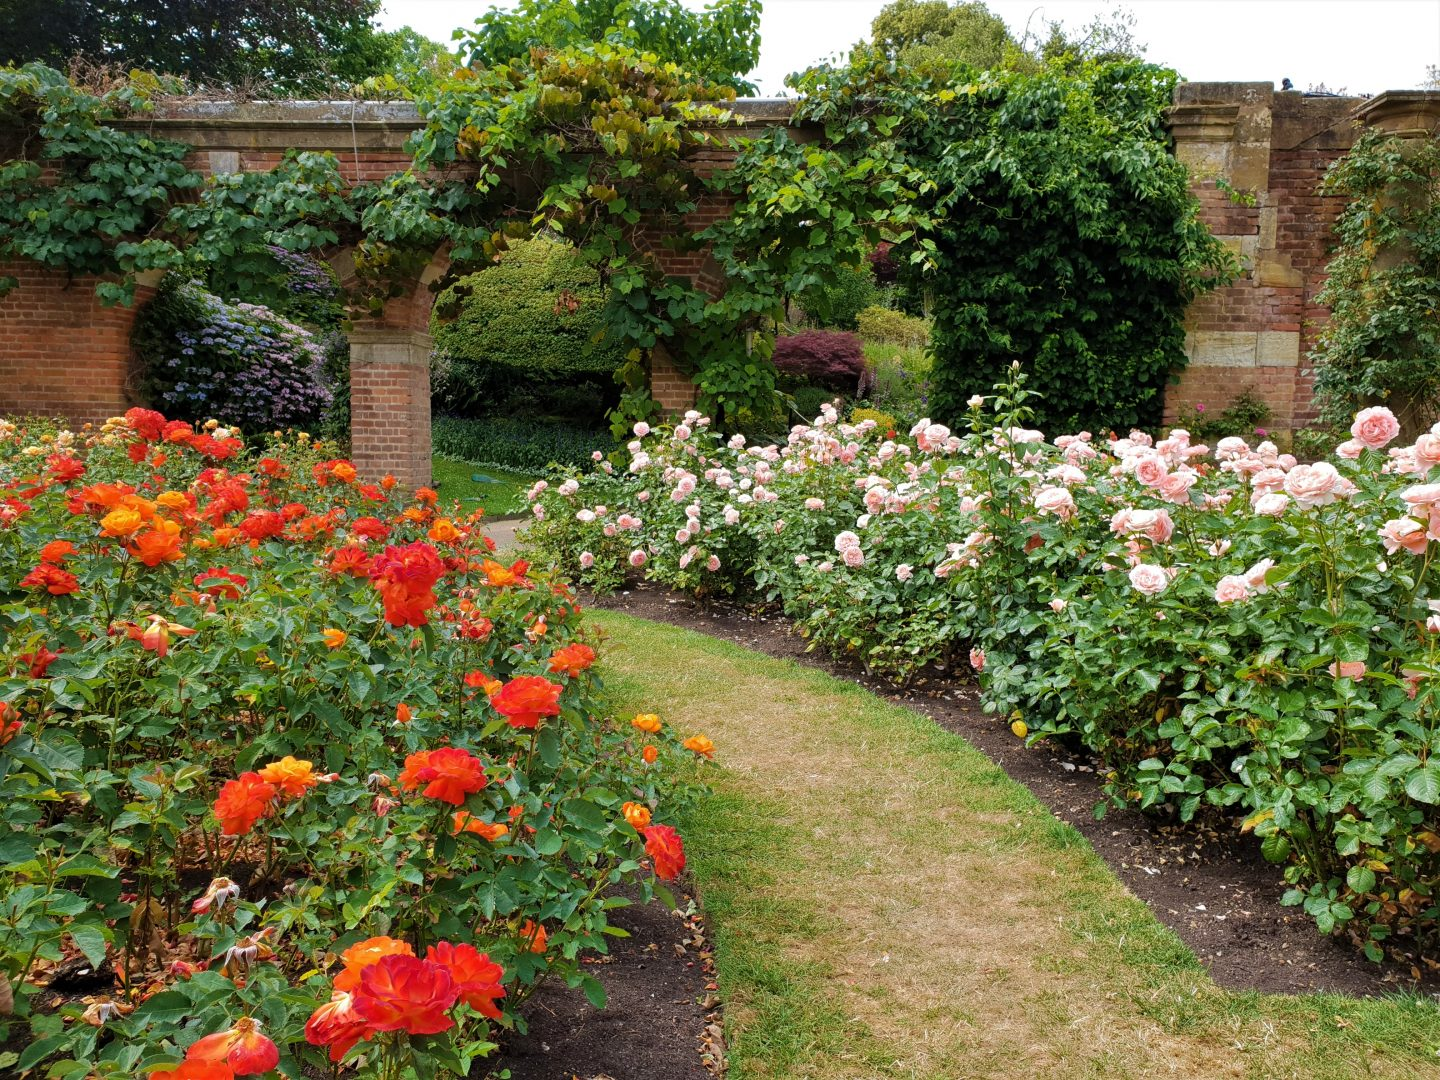 Rose garden in bloom, July, Hever Castle